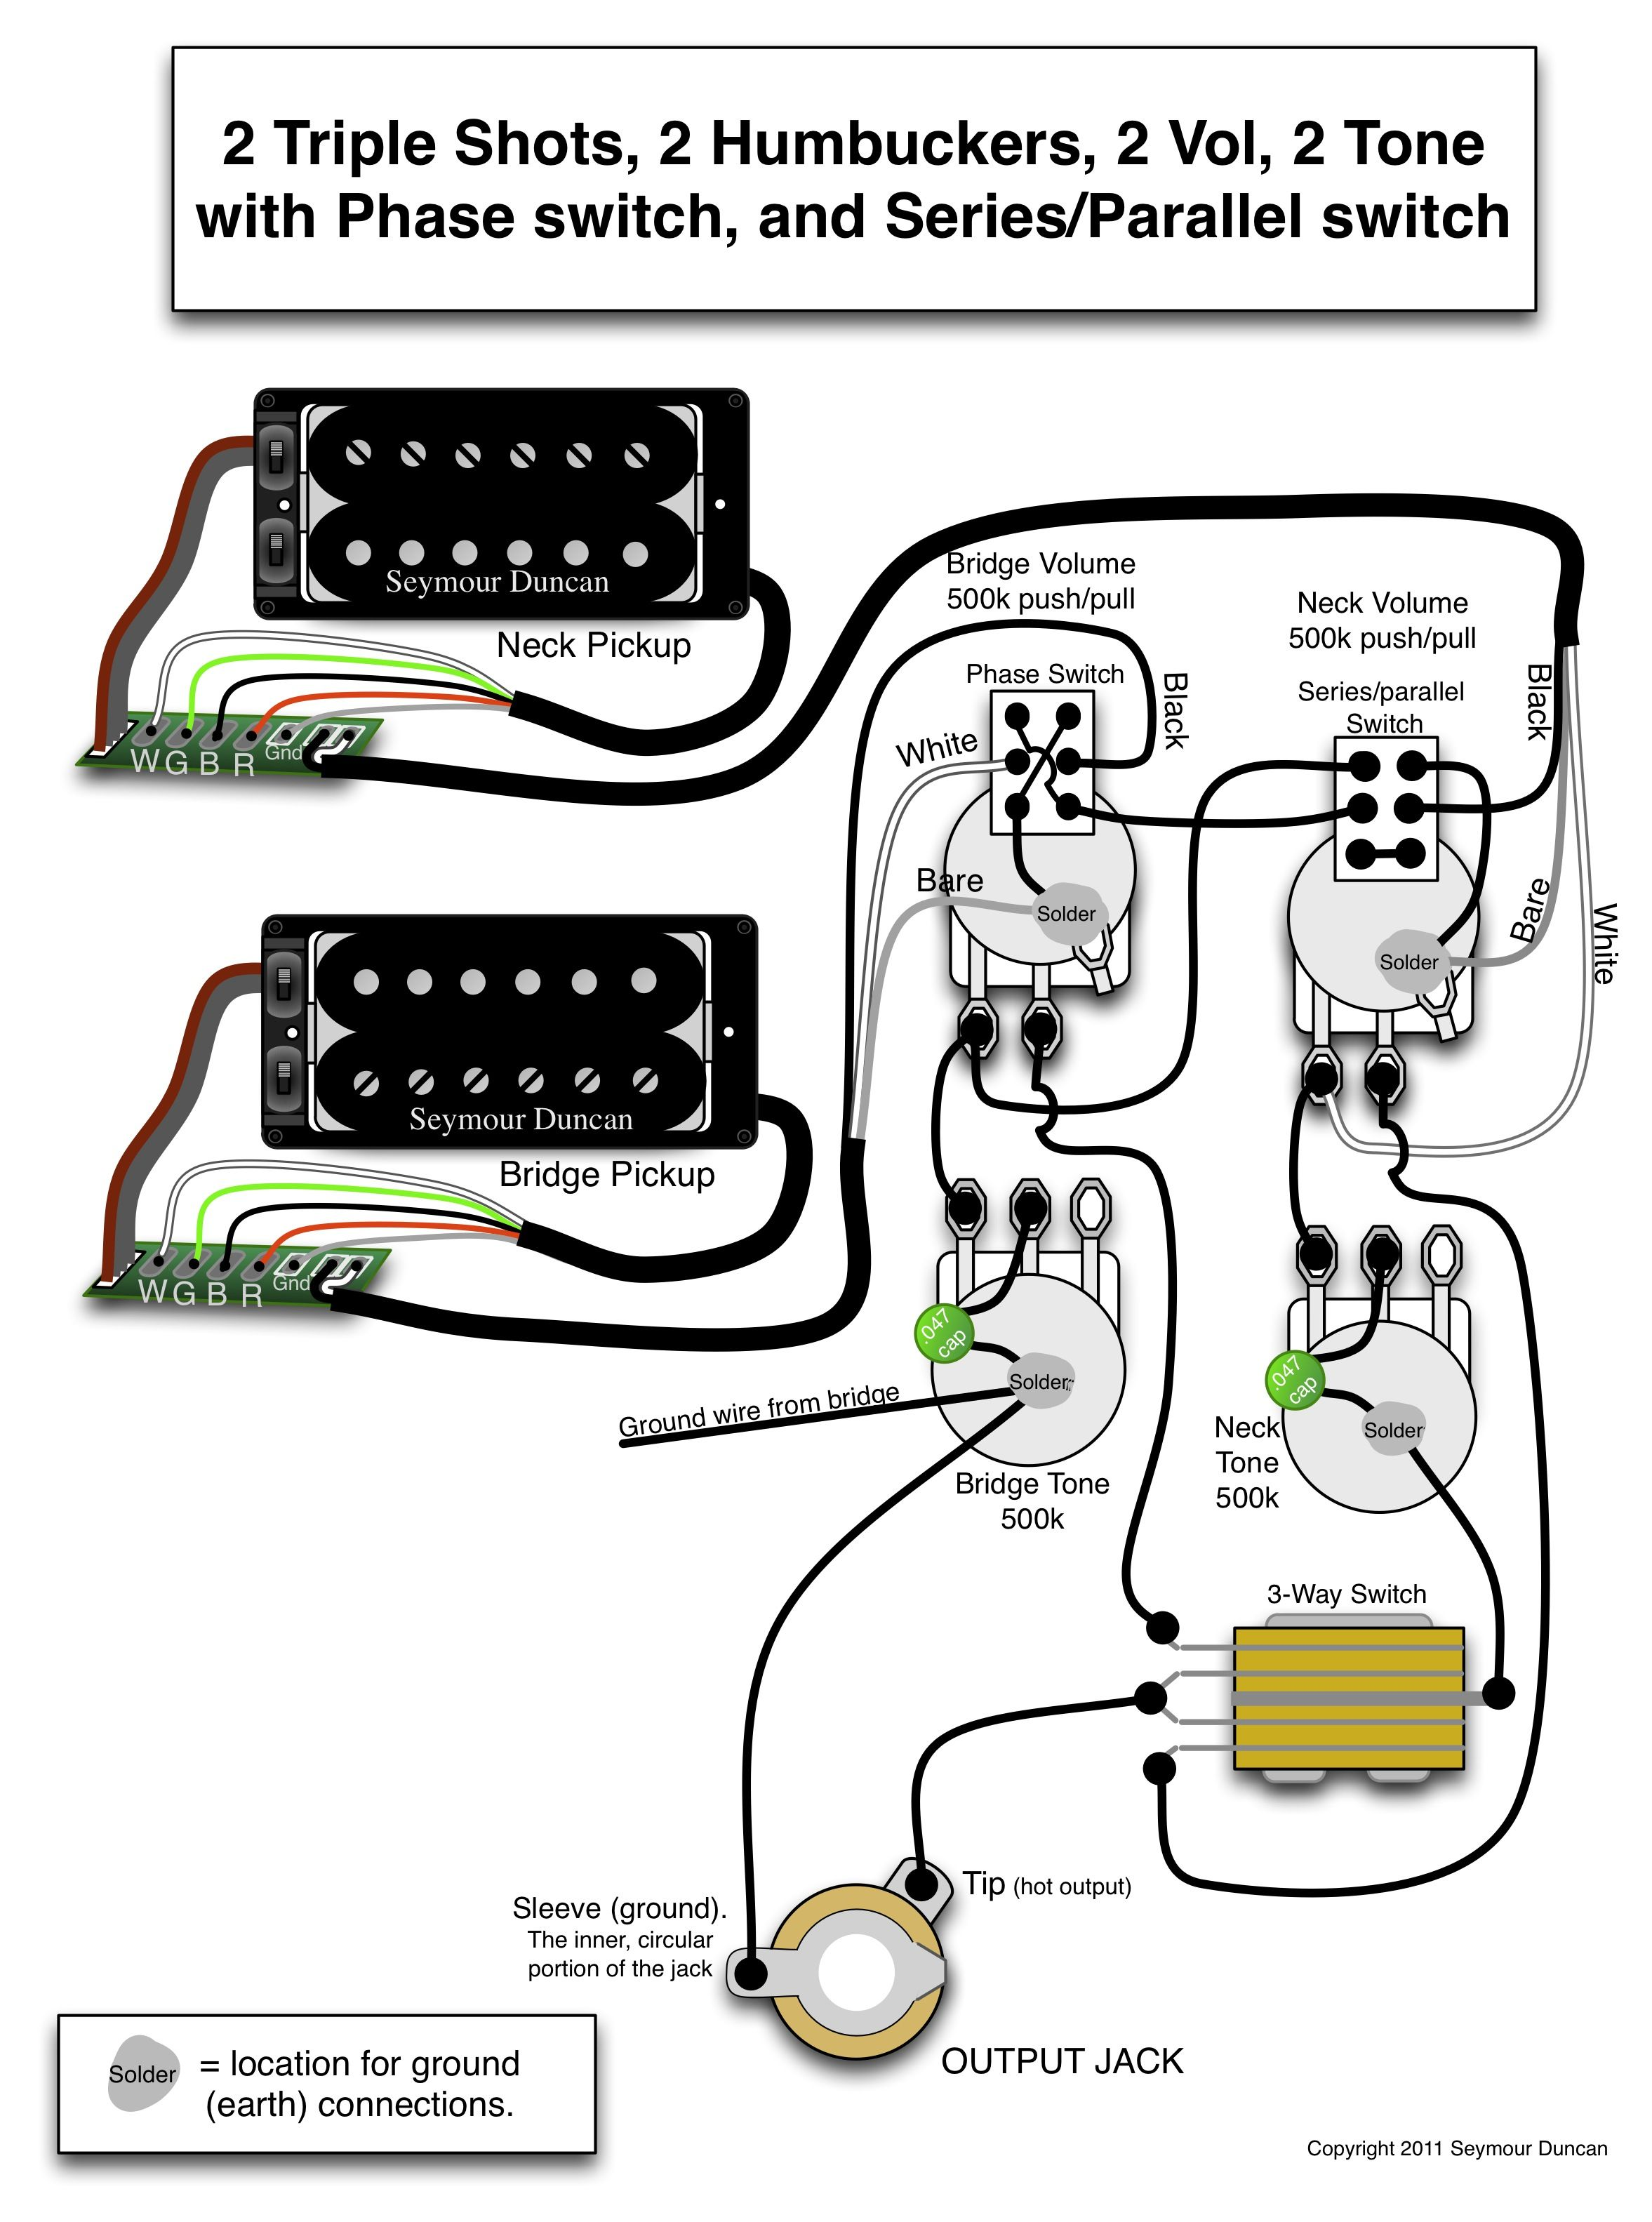 14dc4408abcf3c075a00cd280c1ea7ec seymour duncan wiring diagram 2 triple shots, 2 humbuckers, 2  at aneh.co